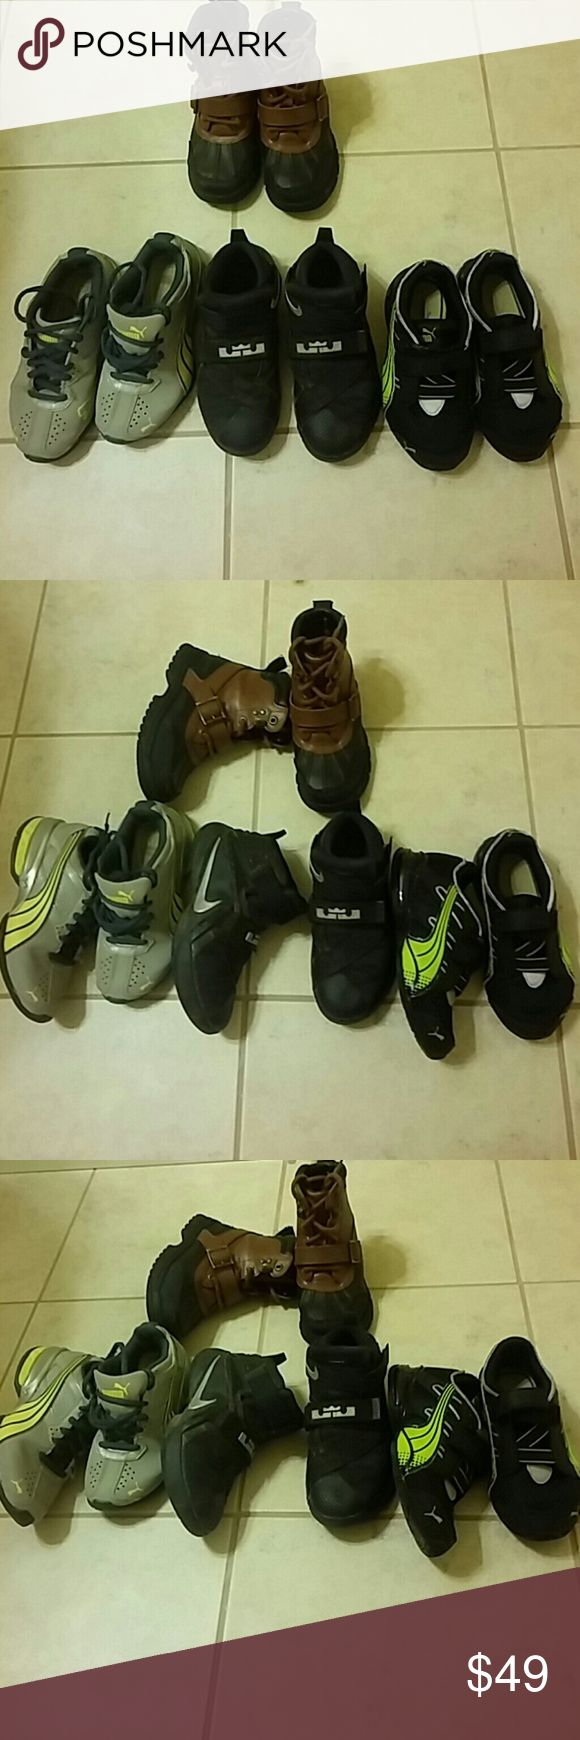 Boys bundle All good condition to fair Black lebrons sz 12c  Grey puma sz 12.5 Blk puma sz 11 Polo ralph lauren boots sz 11 Can also seperate  Can post more pics too. Shoes Sneakers